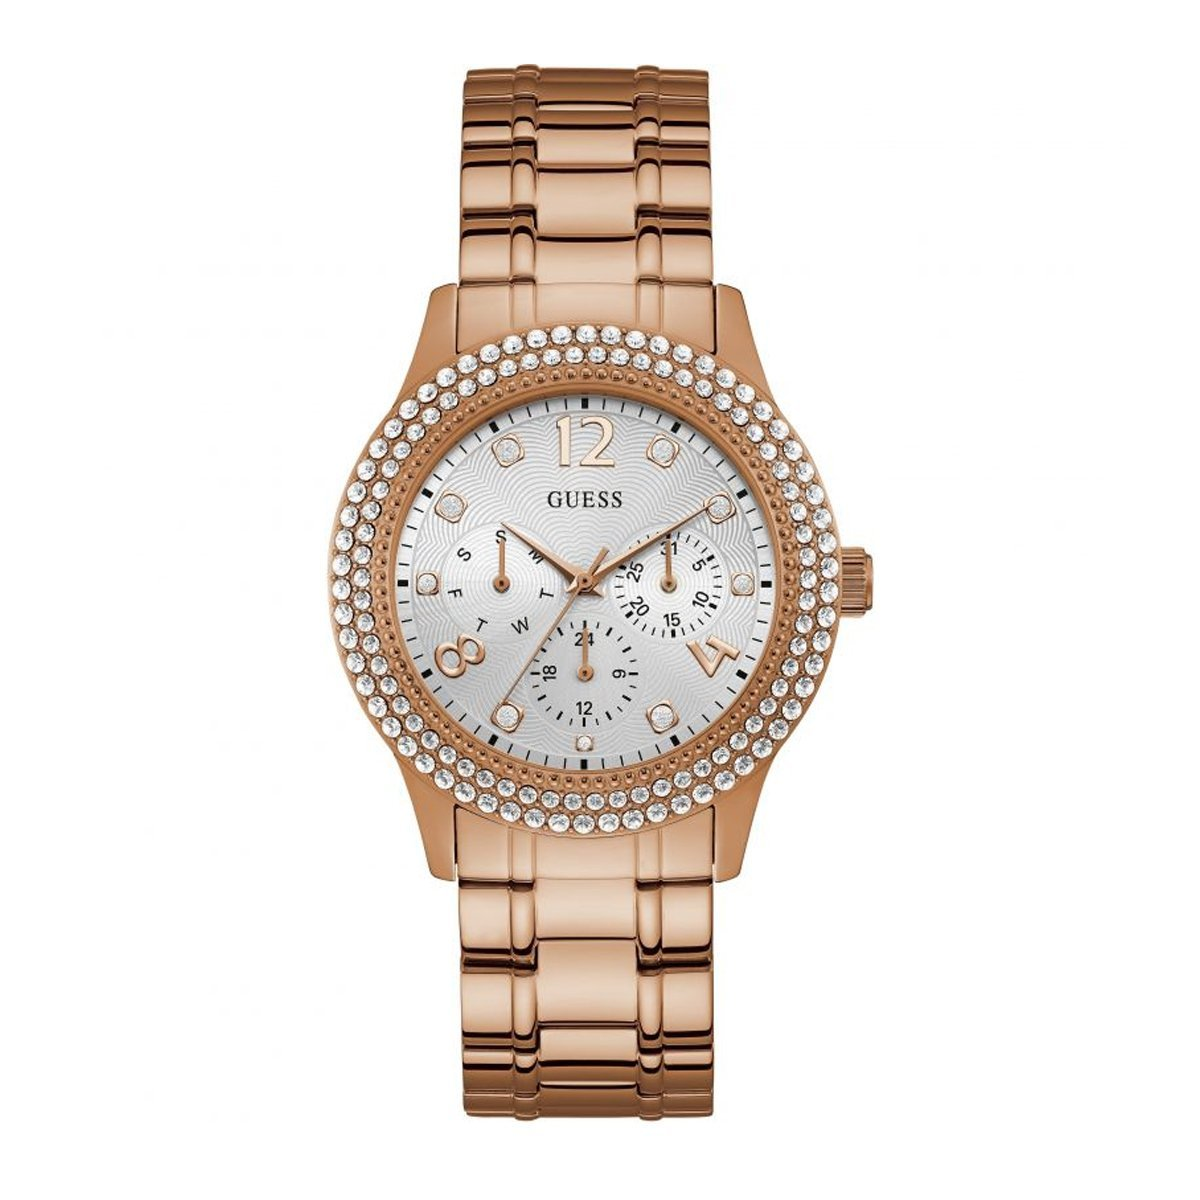 Guess Bedazzle Rose Gold - Watches & Crystals